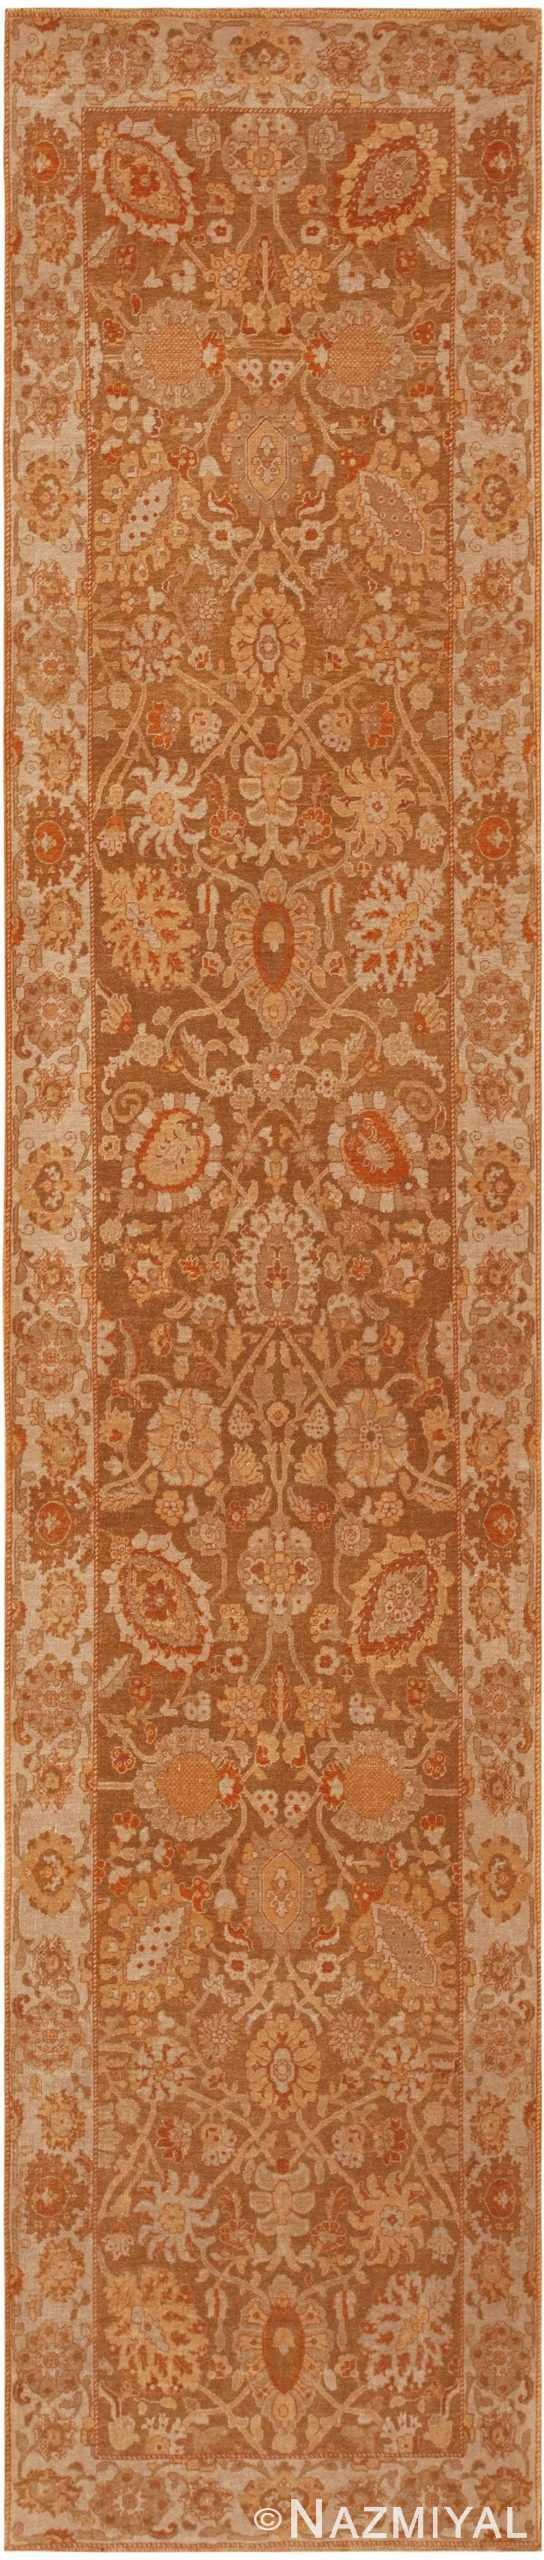 Modern Contemporary Persian Tabriz Runner Rug 41232 Nazmiyal